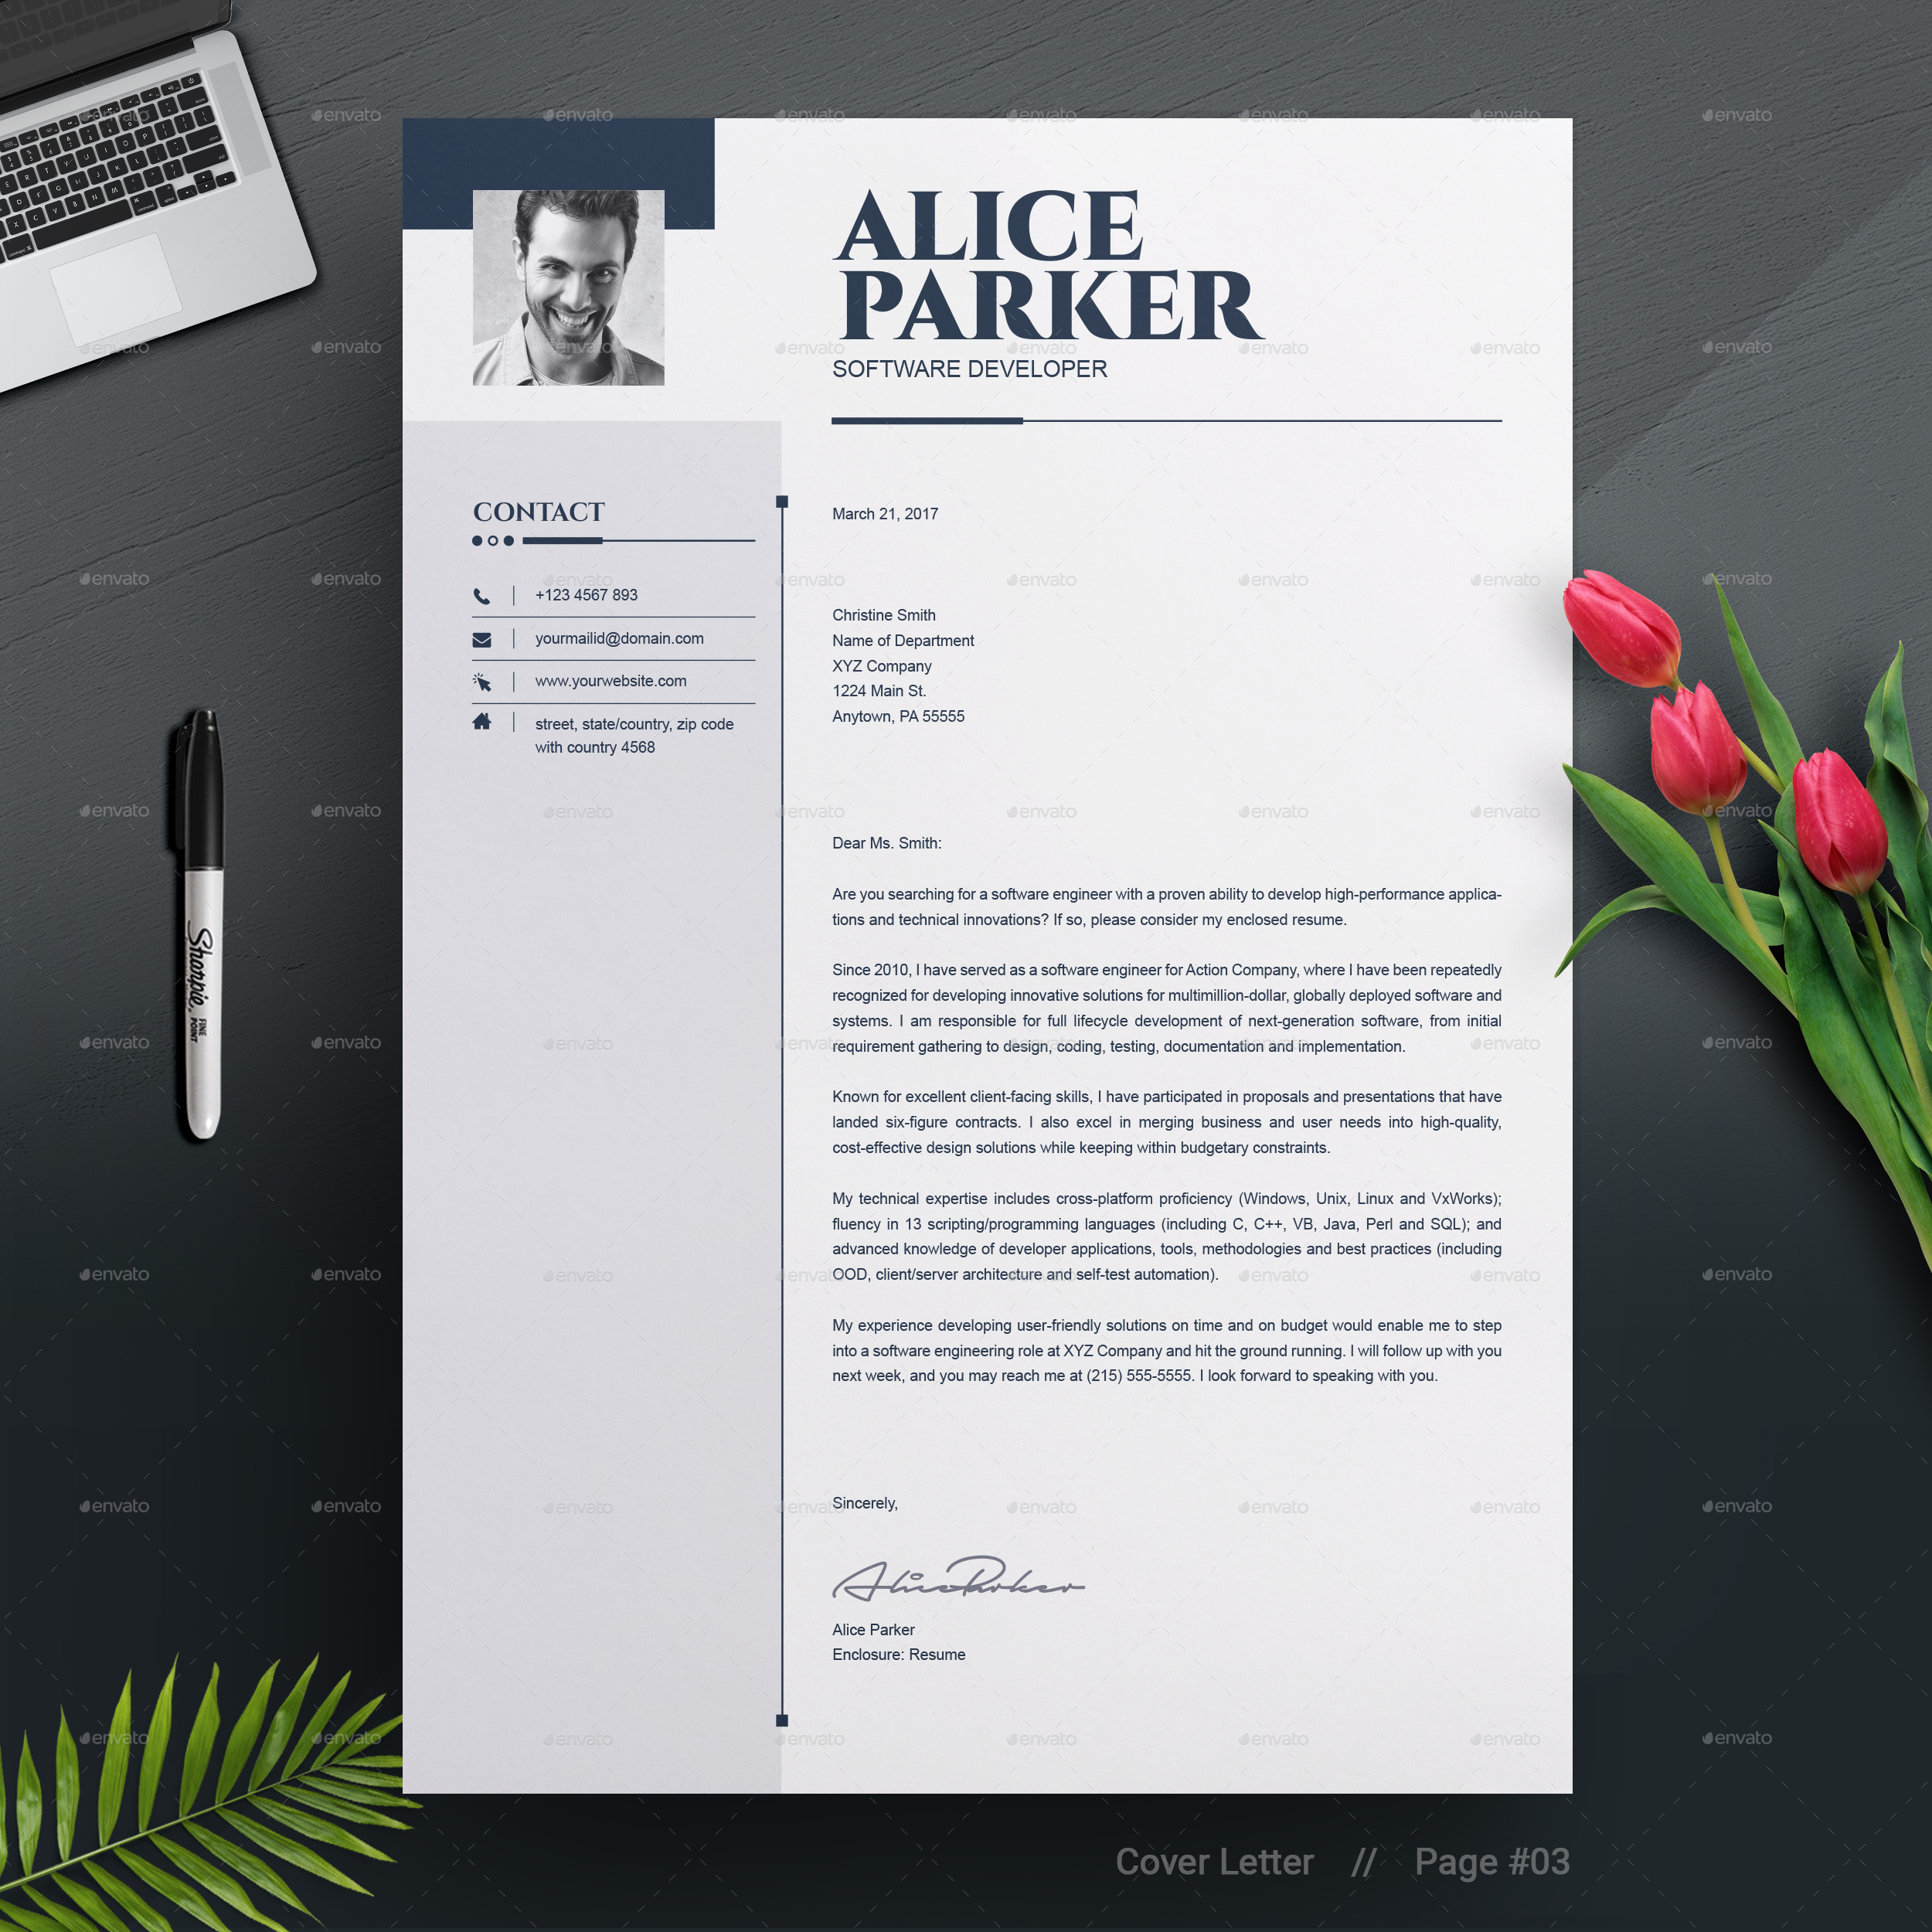 03_Preview Image Set/01_Free-Resume-Design-Template_Main-Image.jpg  03_Preview Image Set/02_2-Pages-Free-Resume-Design-Template.jpg